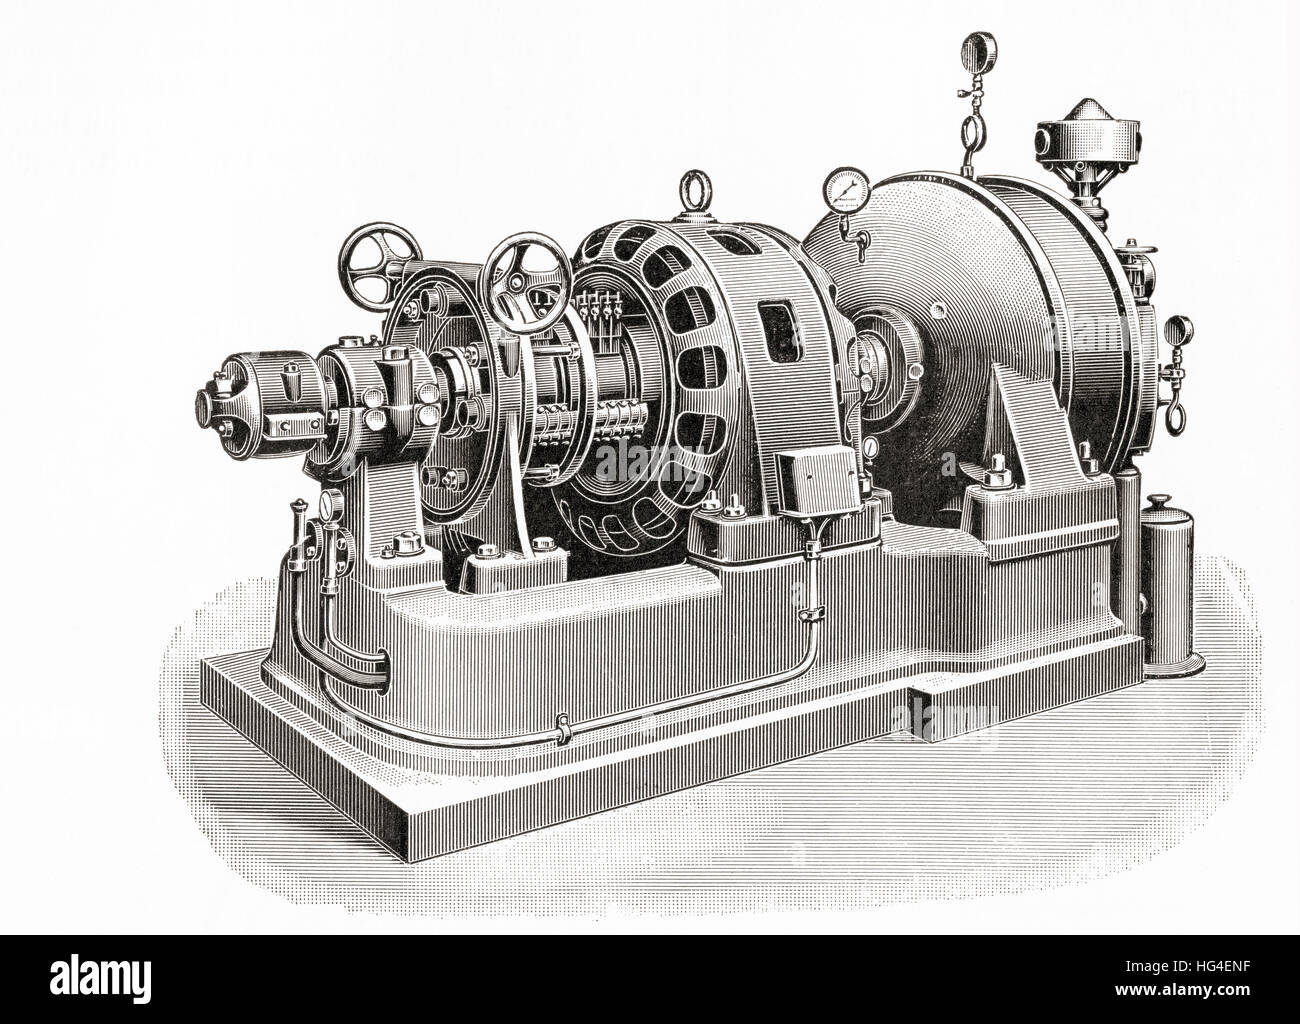 A 150 kilowatt Curtis turbine machine. From Meyers Lexicon, published 1924. Stock Photo